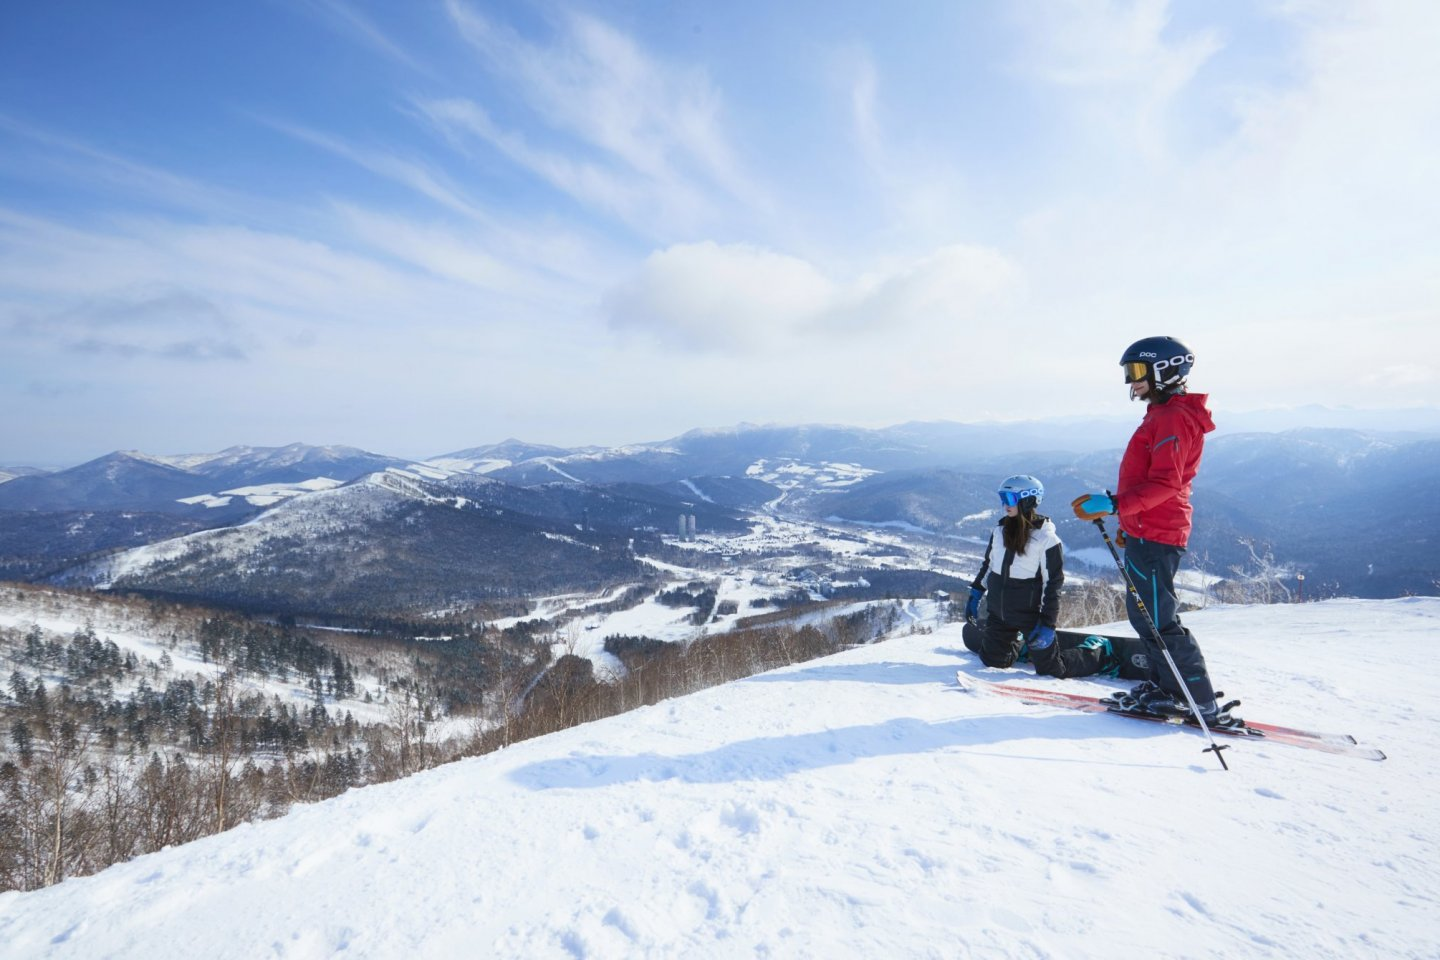 Imagine skiing on top of the world in a few hours from landing at Chitose Airport